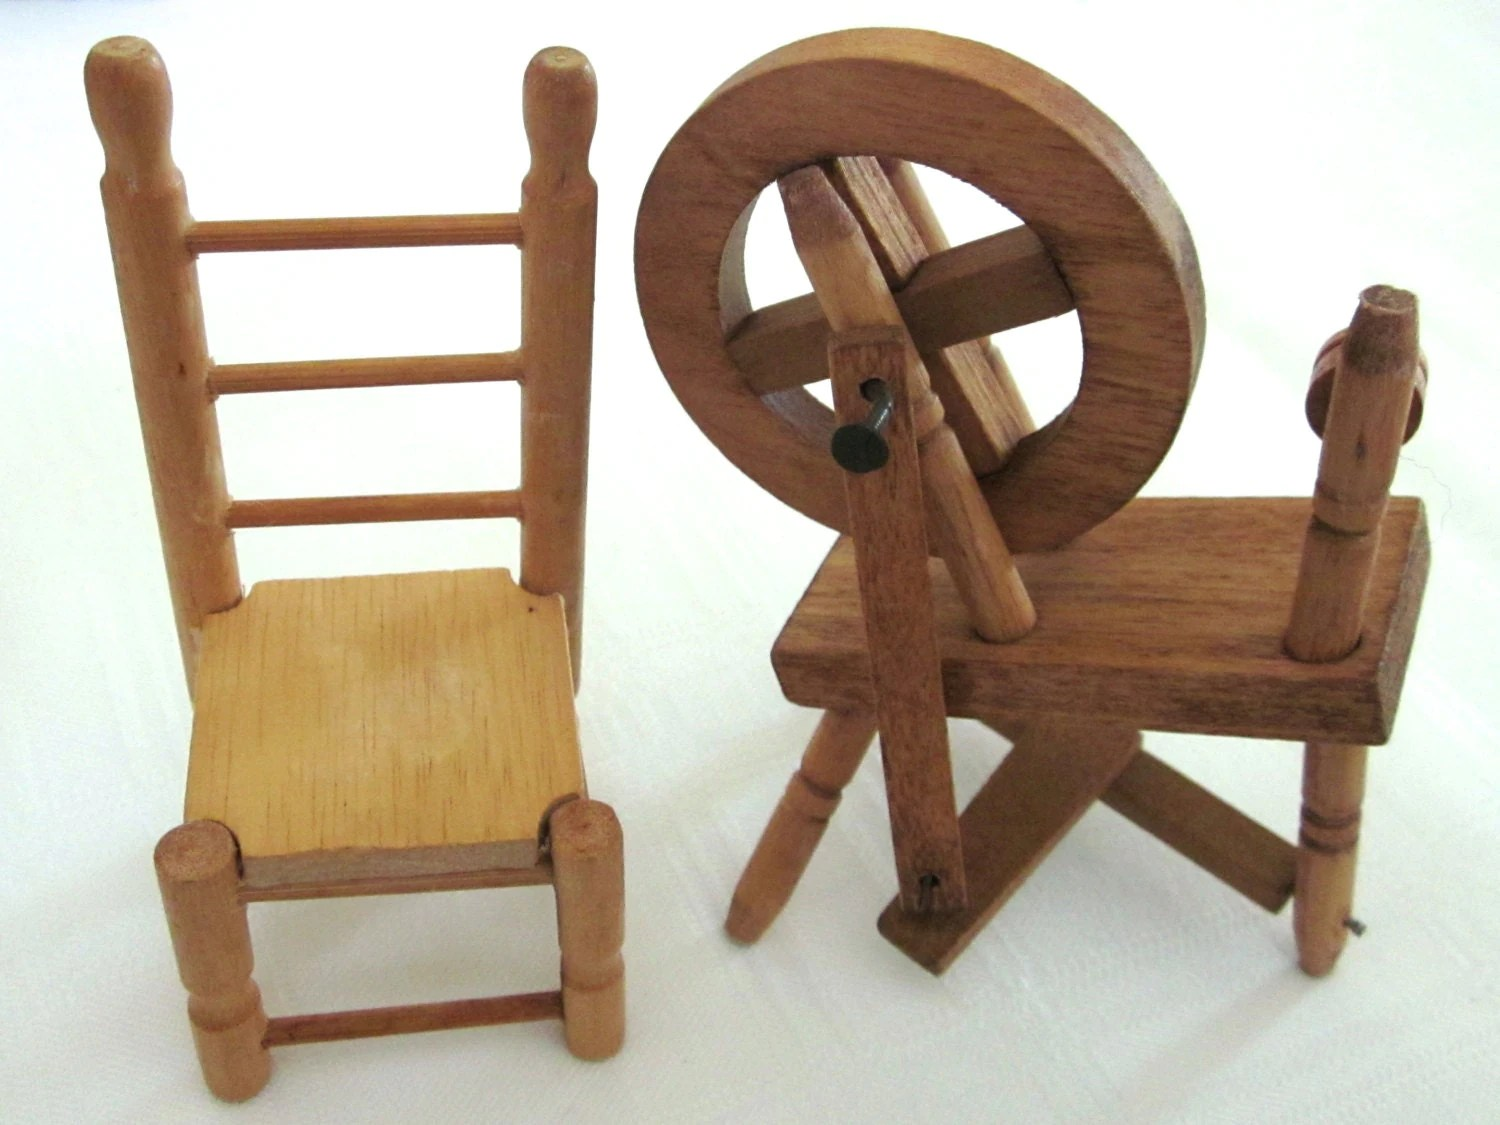 Spinning Chair Vintage Dollhouse Miniature Spinning Wheel And By Jewelryannie